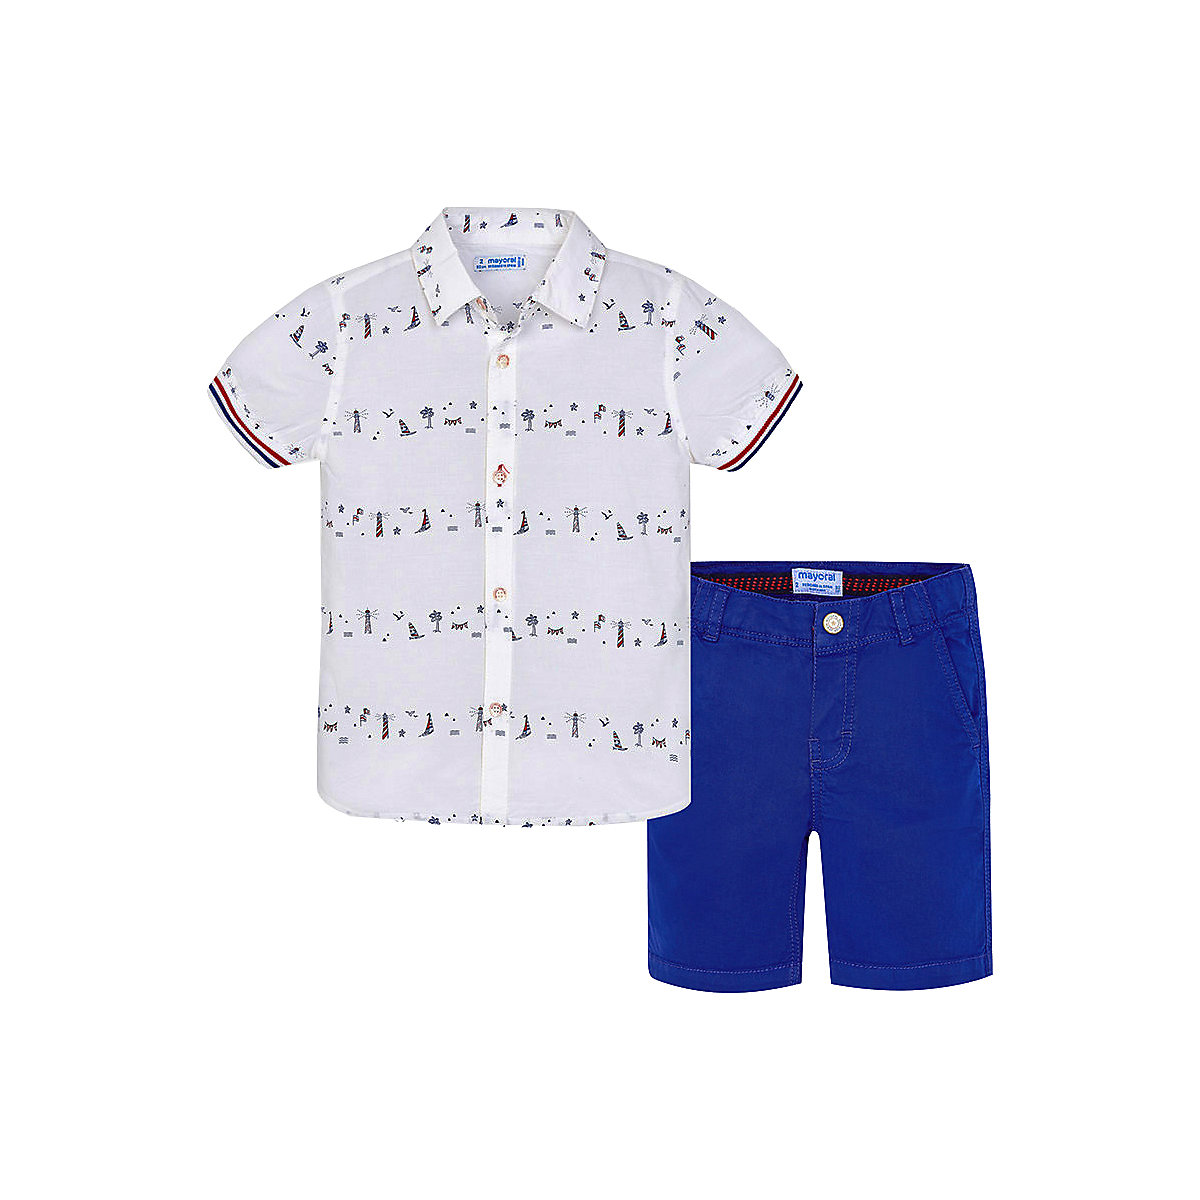 Фото - Baby's Sets MAYORAL 10690561 set of clothes for kids T-shirt legs shirt shorts girls and boys shein kiddie girls white striped side casual top and shorts two piece set clothes sets 2019 spring long sleeve kids suit set